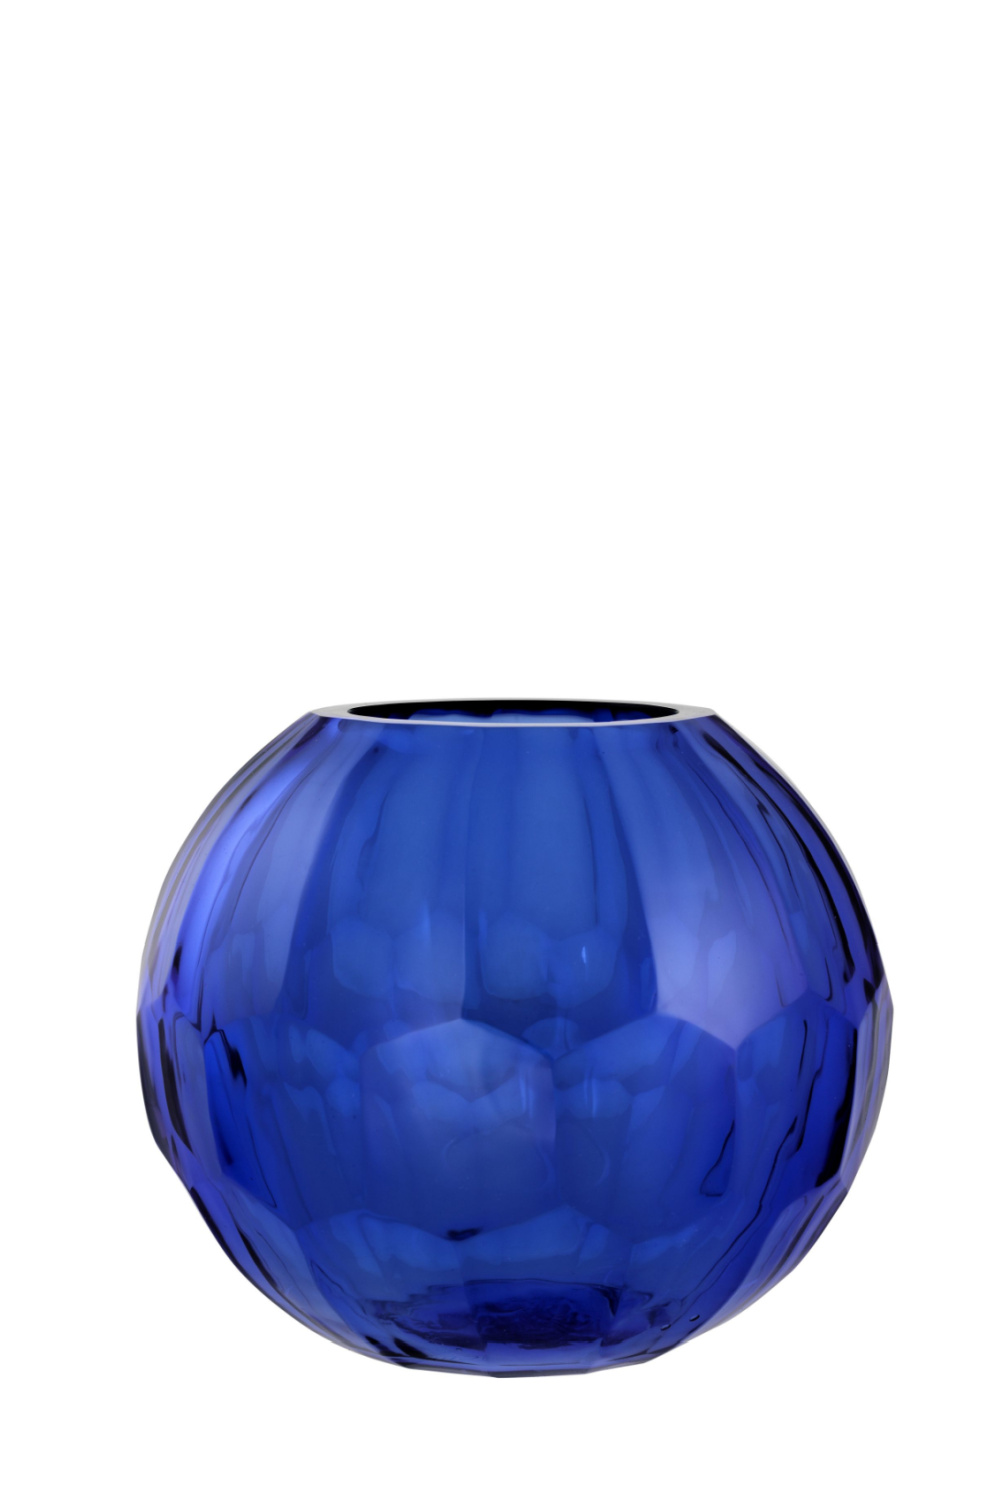 Blue Glass Vase - S | Eichholtz Feeza | OROA Modern & Luxury Furniture